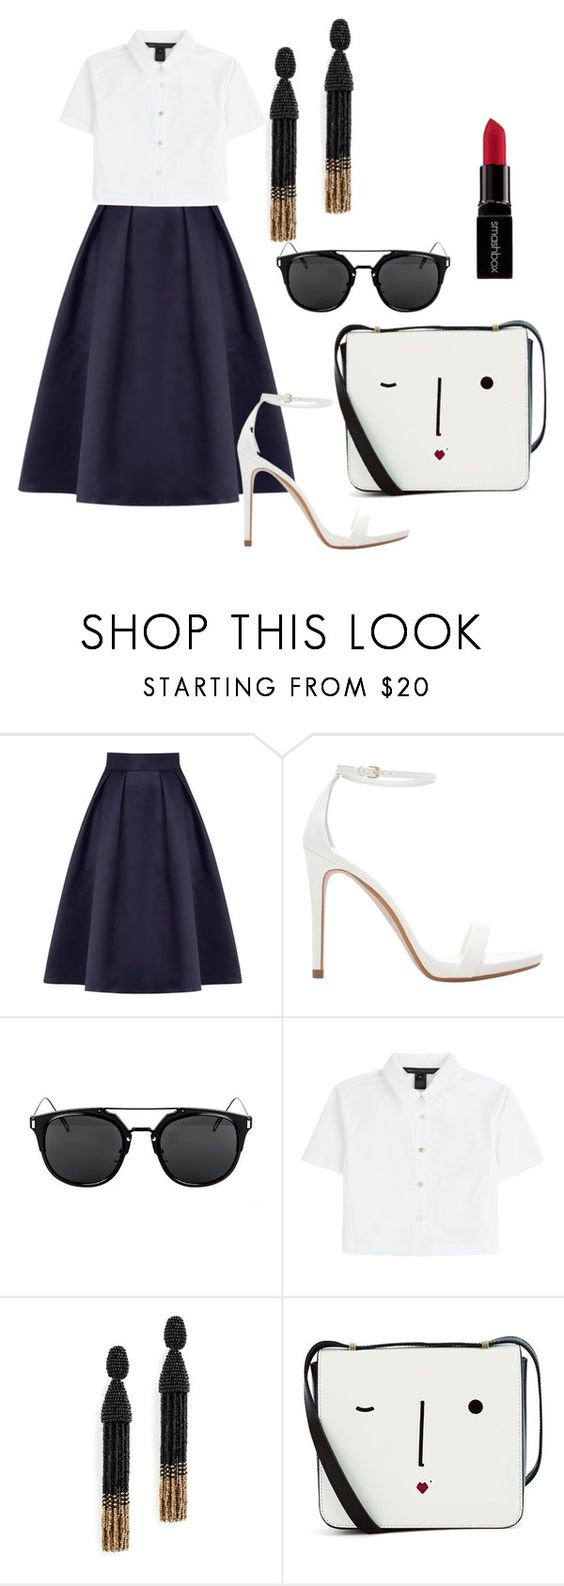 """Untitled #451"" by amnatariq ❤ liked on Polyvore featuring Coast, Zara, Marc by Marc Jacobs, Oscar de la Renta, Lulu Guinness and Smashbox"